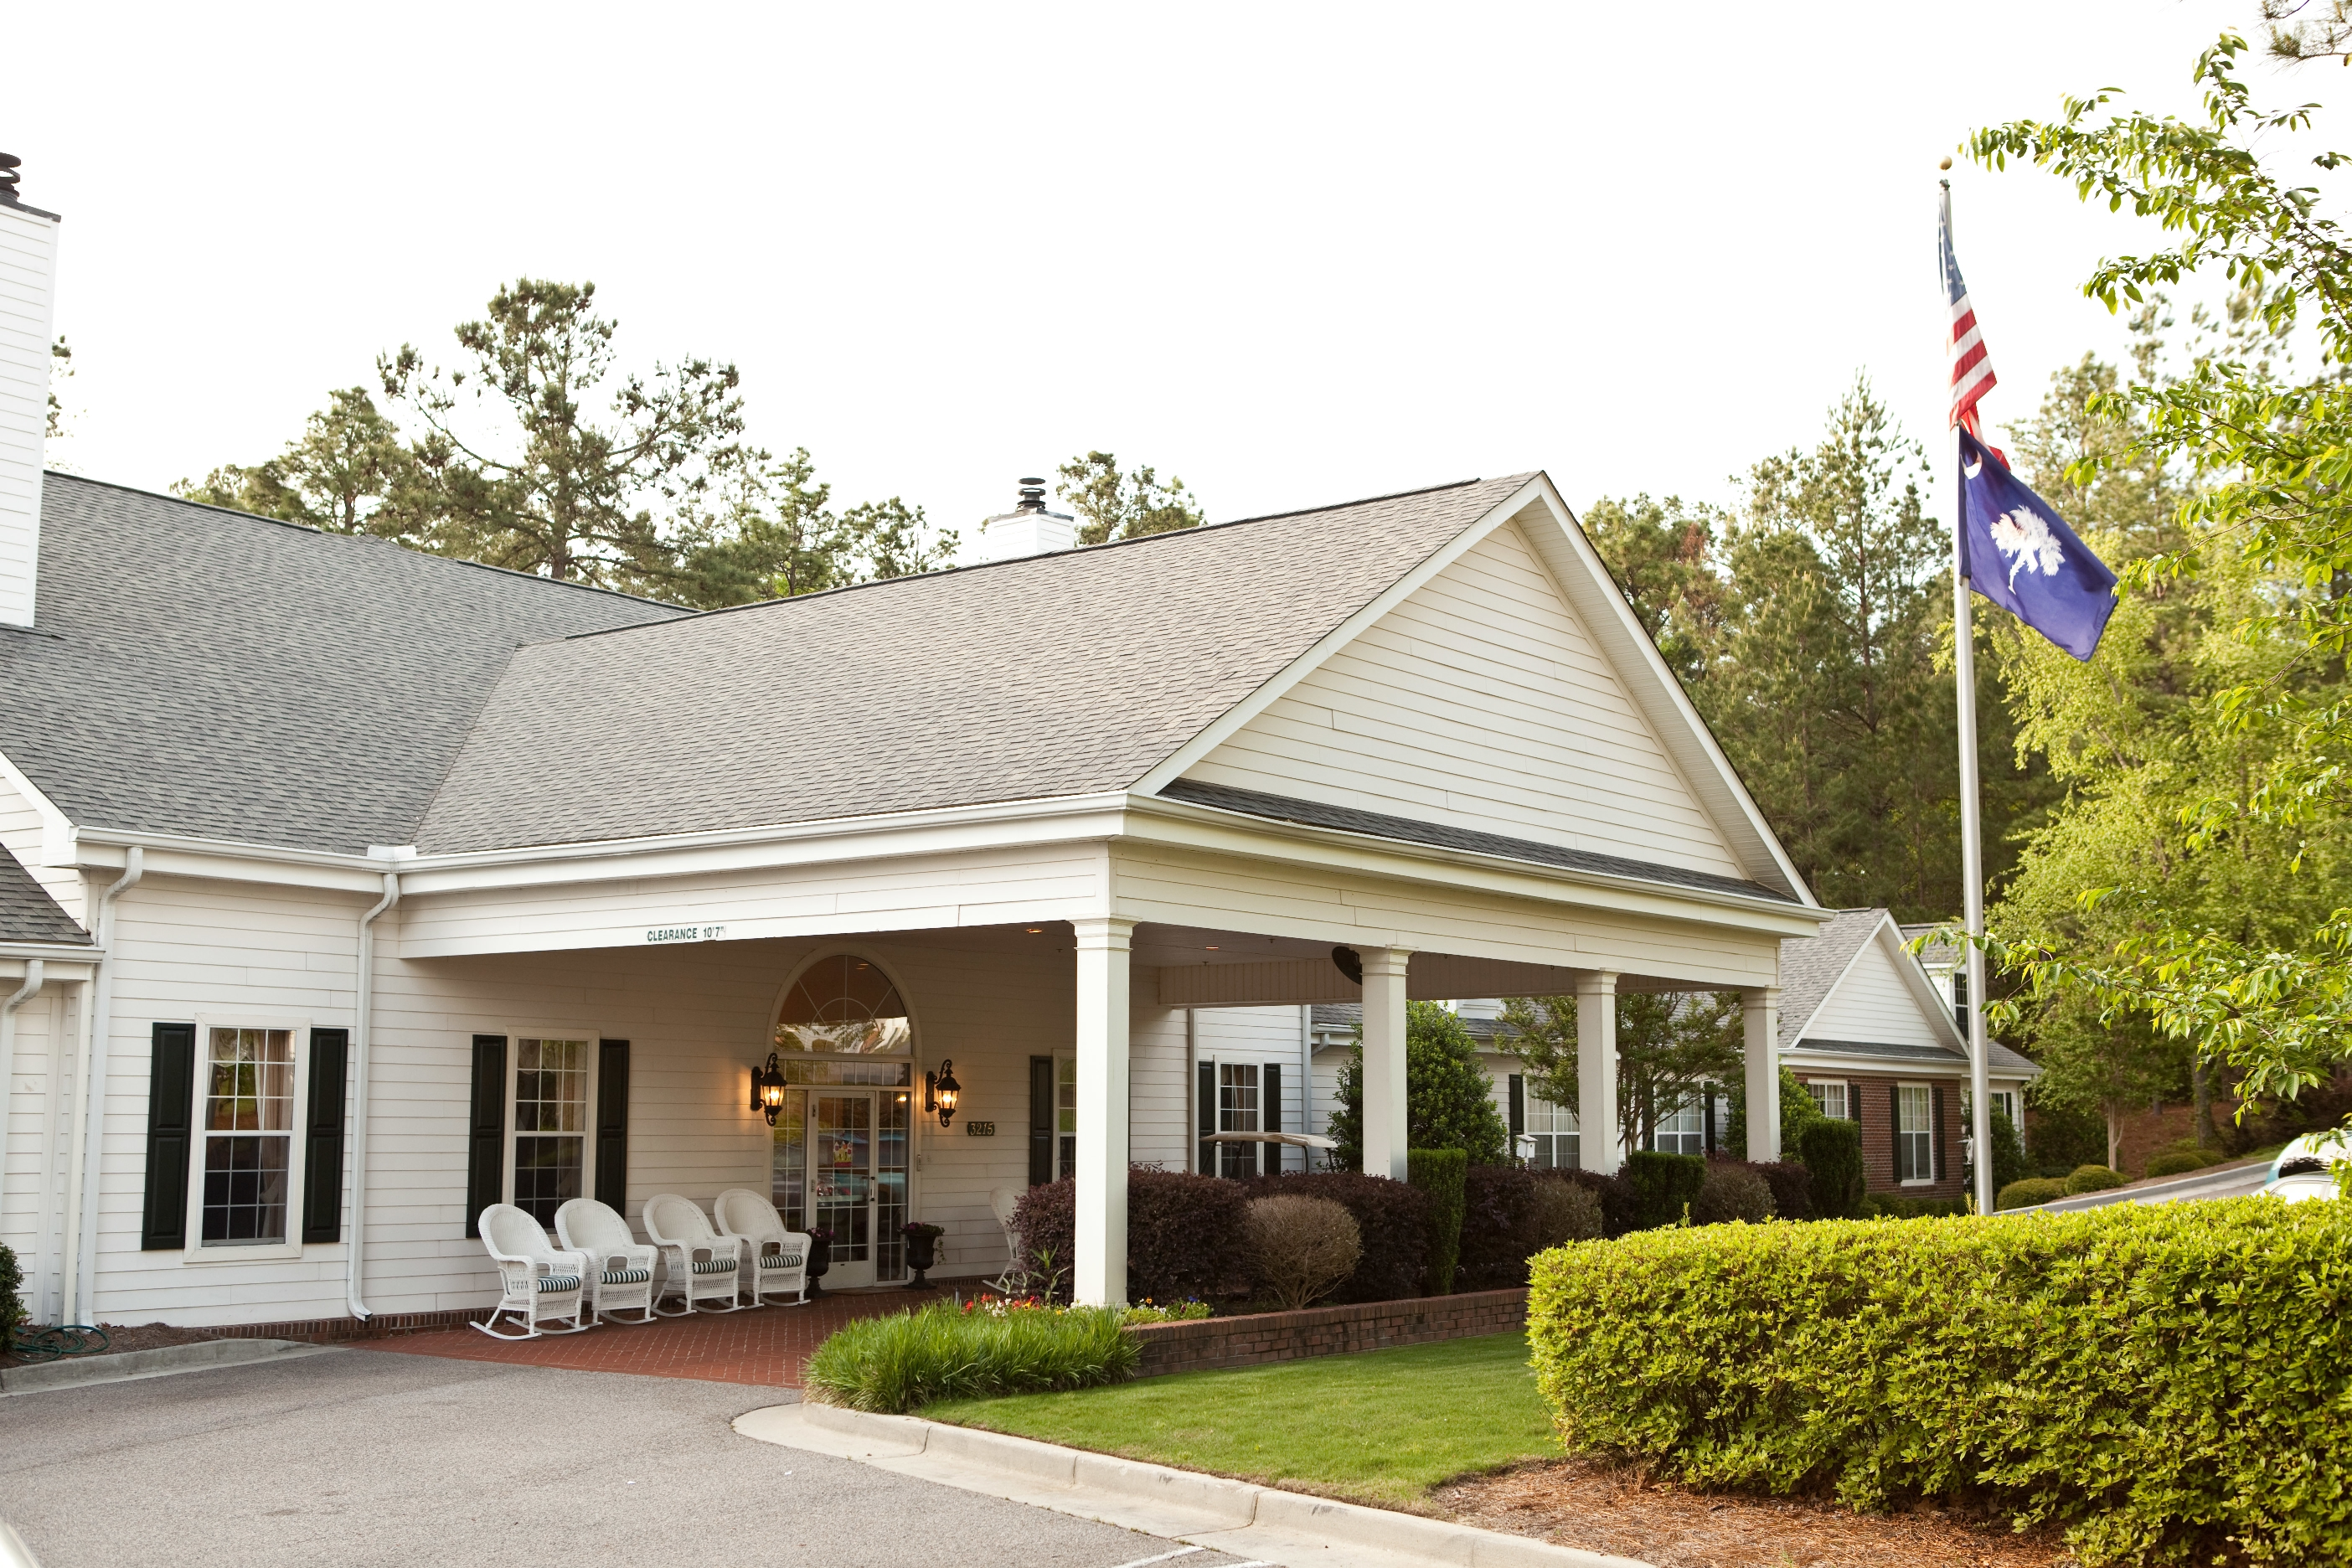 The Hills of Cumberland Village - A Marrinson Senior Care Residence image 2